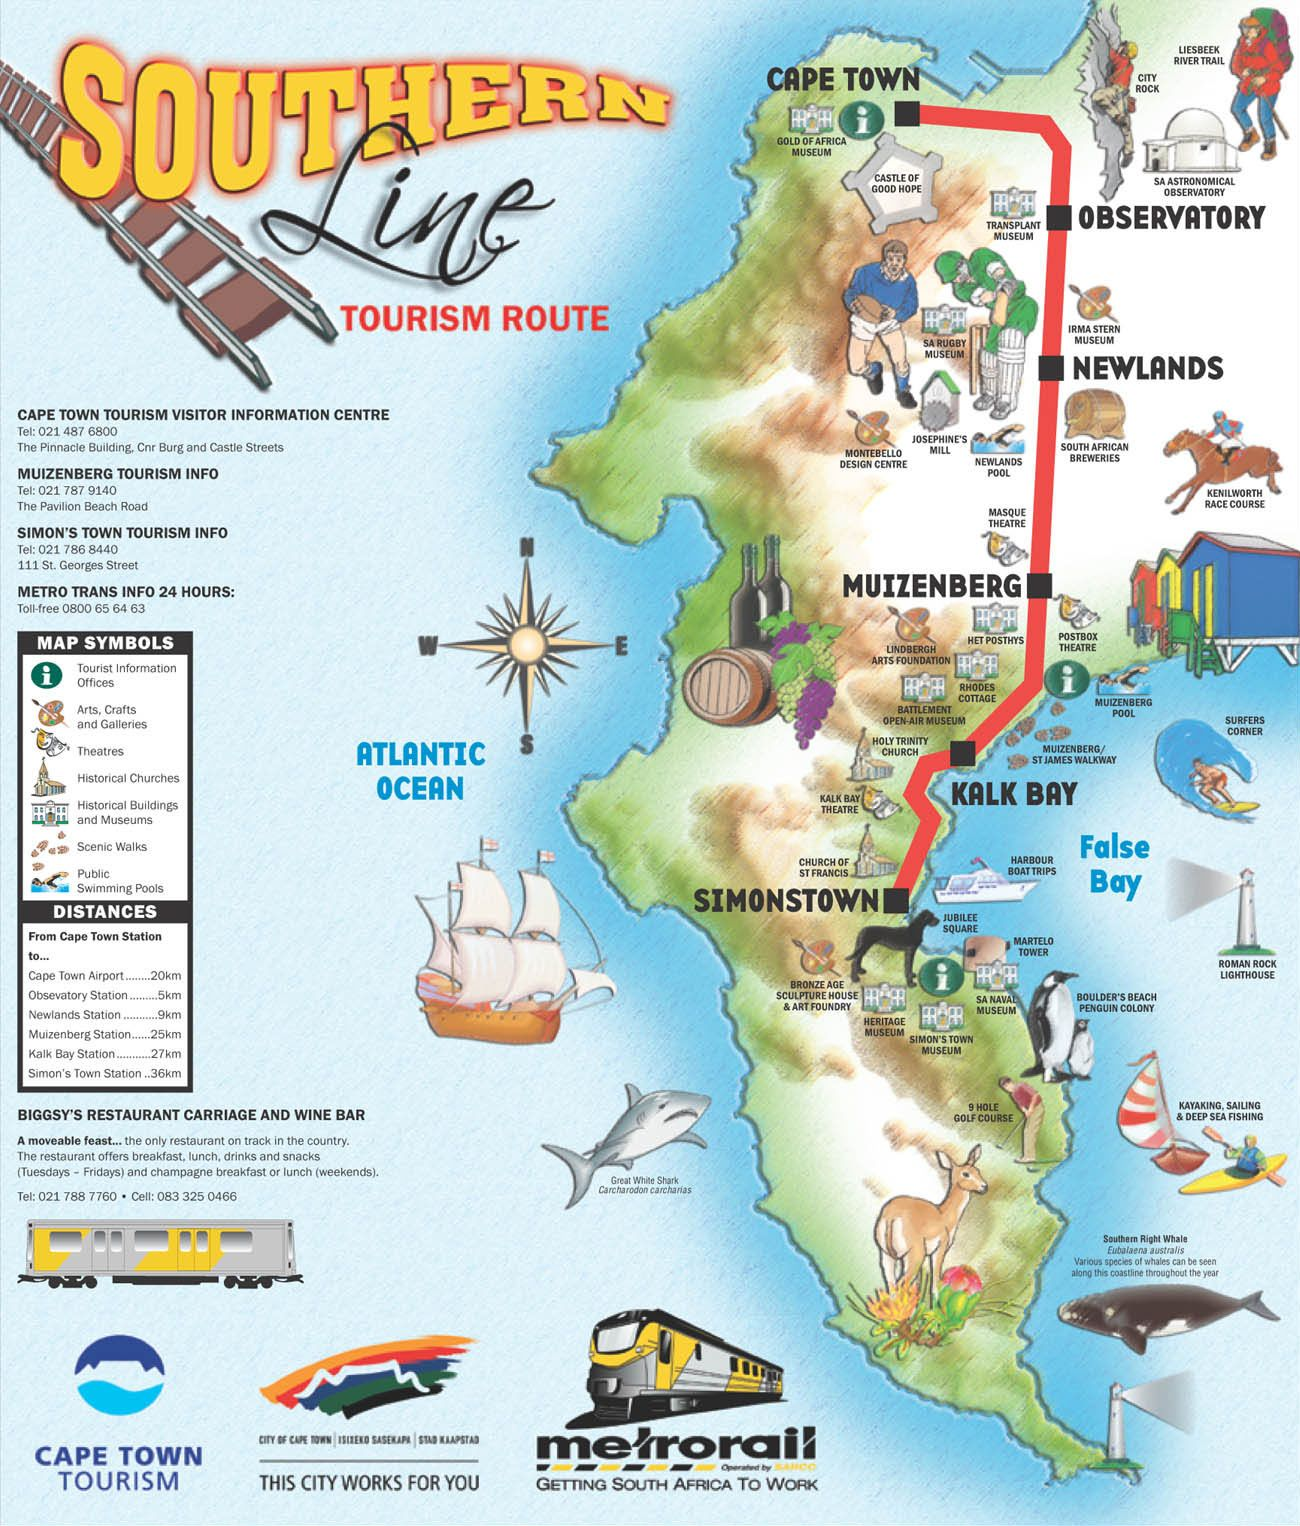 hoponmapjpg 1 3001 526 pixels Cape Town tourist map Pinterest